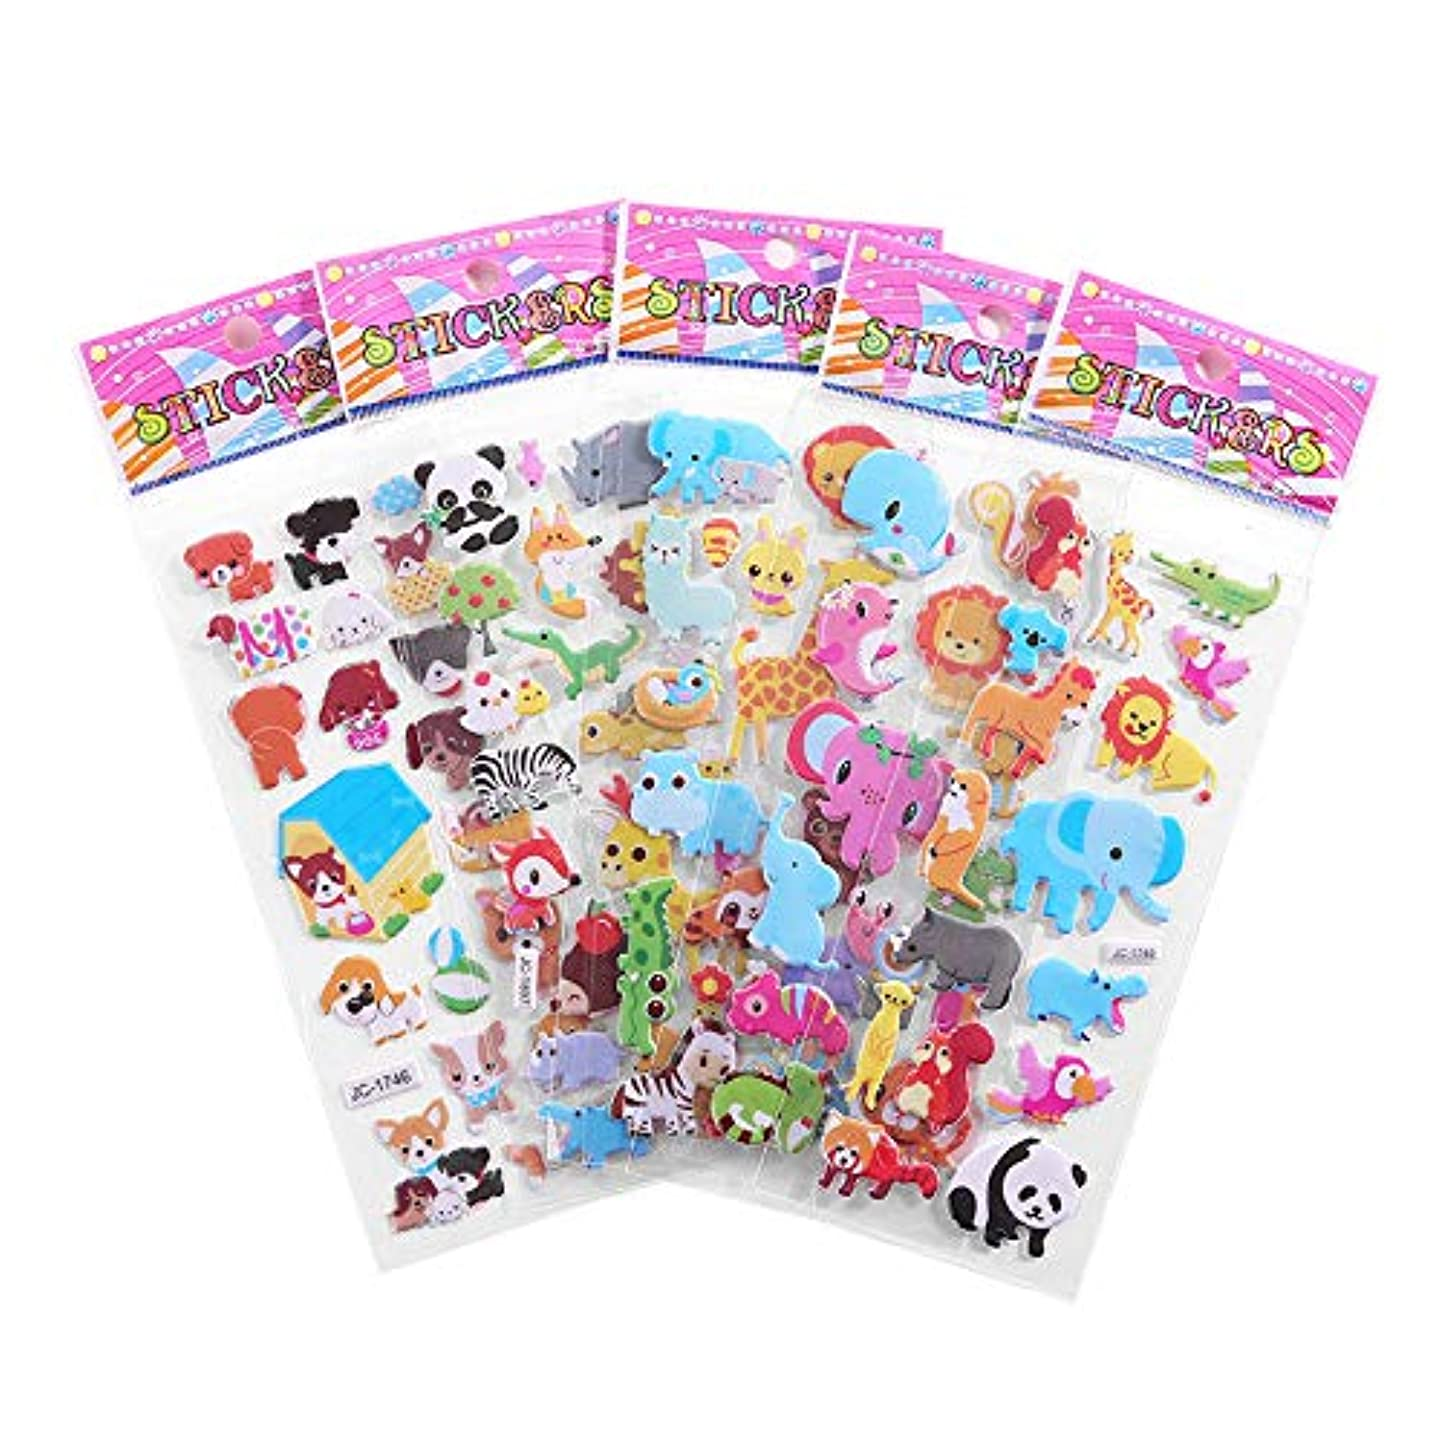 xinyankeying Kids Bubble Stickers 10 Sheets , 3D Puffy Stickers with Good Adhesion and Removable Lables ,Bulk Stickers for Kids Gift and Scrapbooking bziqdaaahdzx